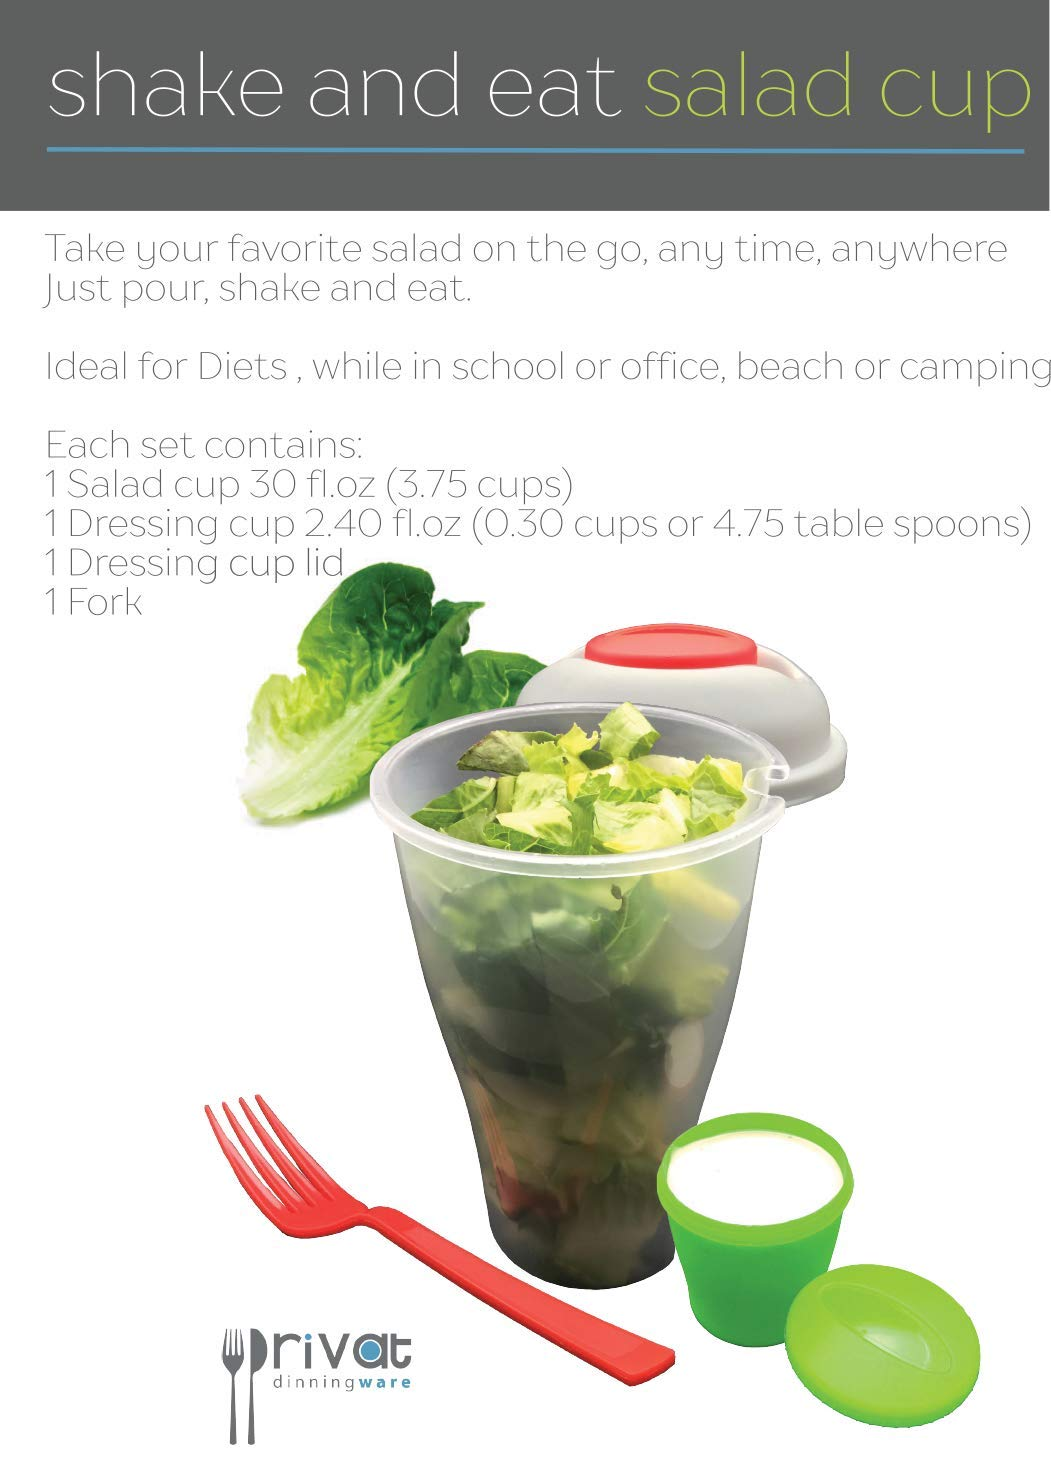 Shake and Eat 2 Fresh Salad Cups both Including a Fork and a Dressing Cup Ramco International Corporation PVT-108 Privat